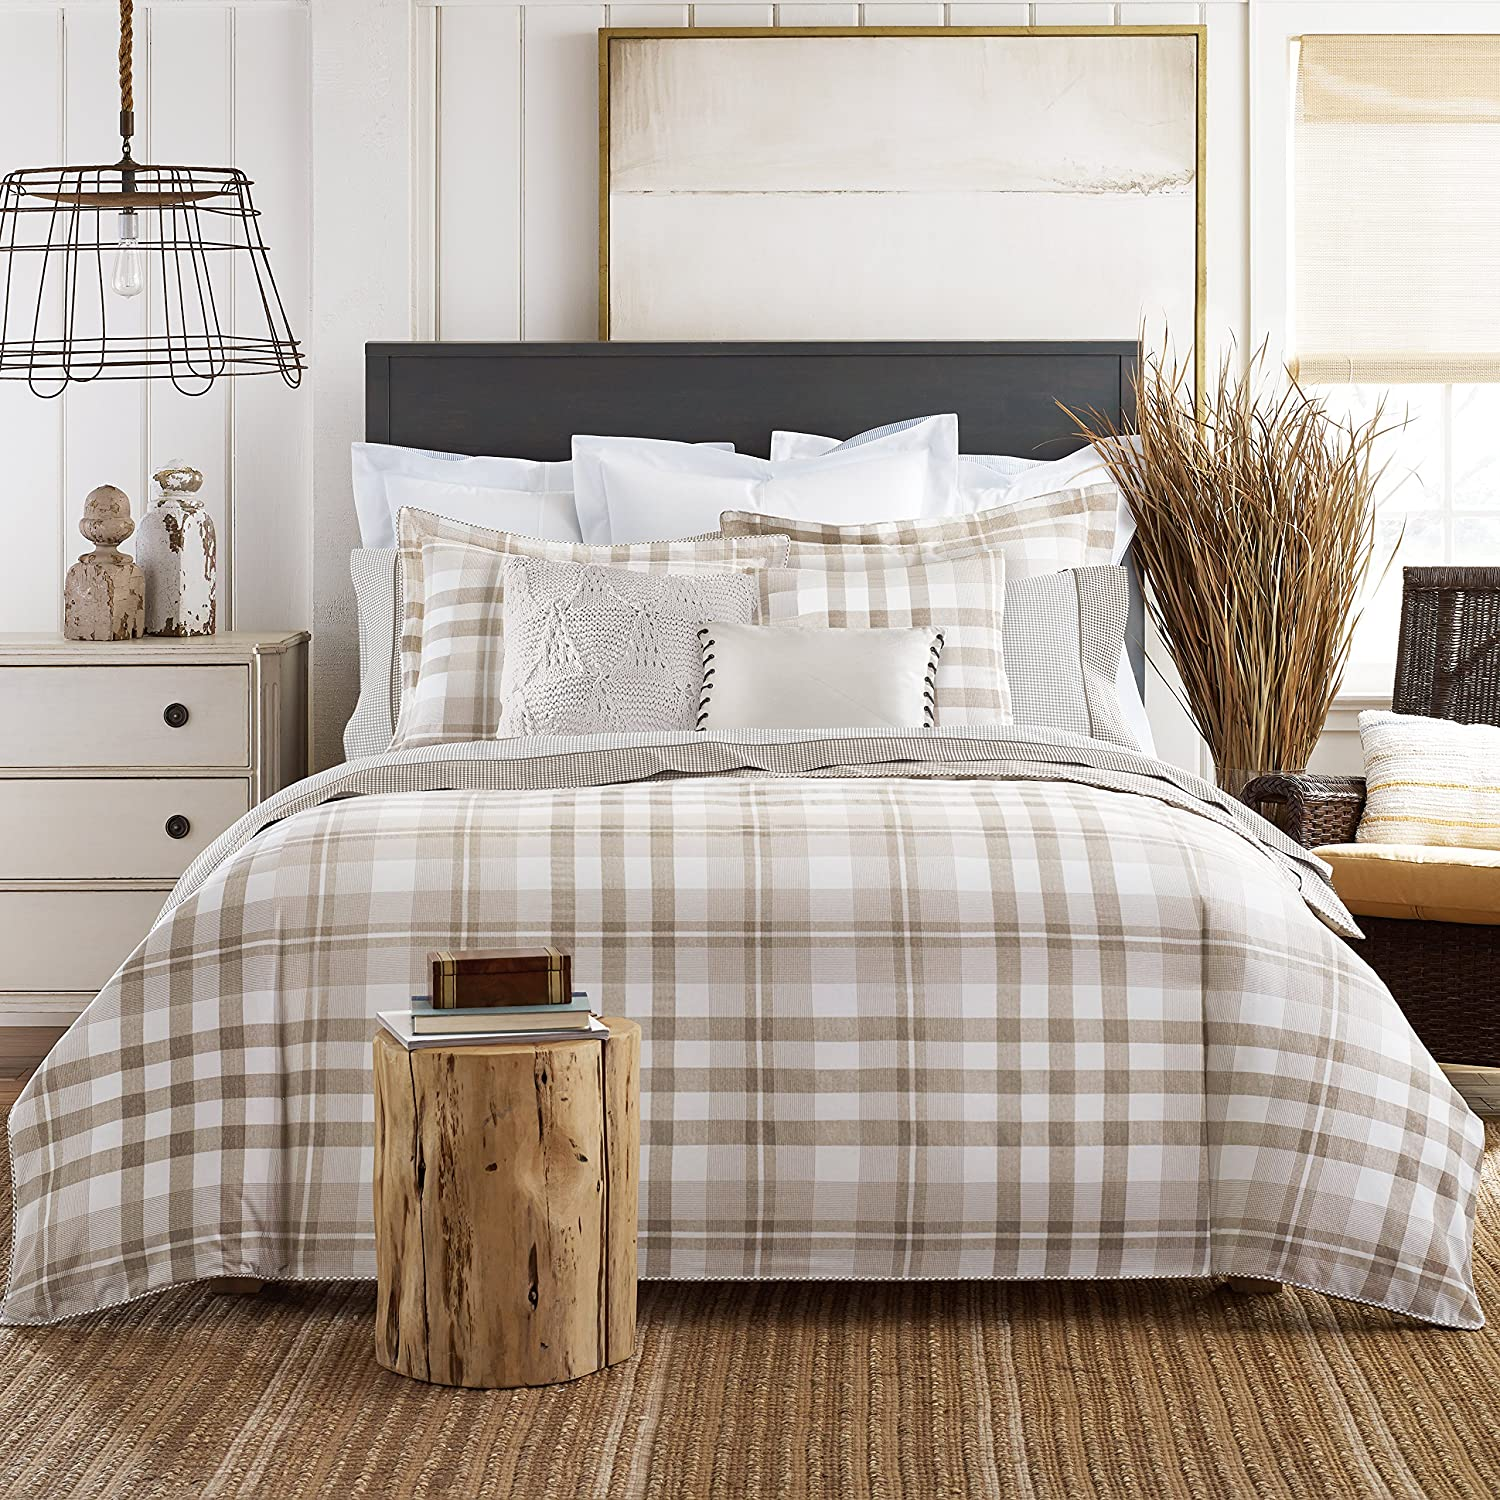 buffalo nautica bedding set size tartan comforter full checkered blue black queen green of sets satin plaid bedspreads white and